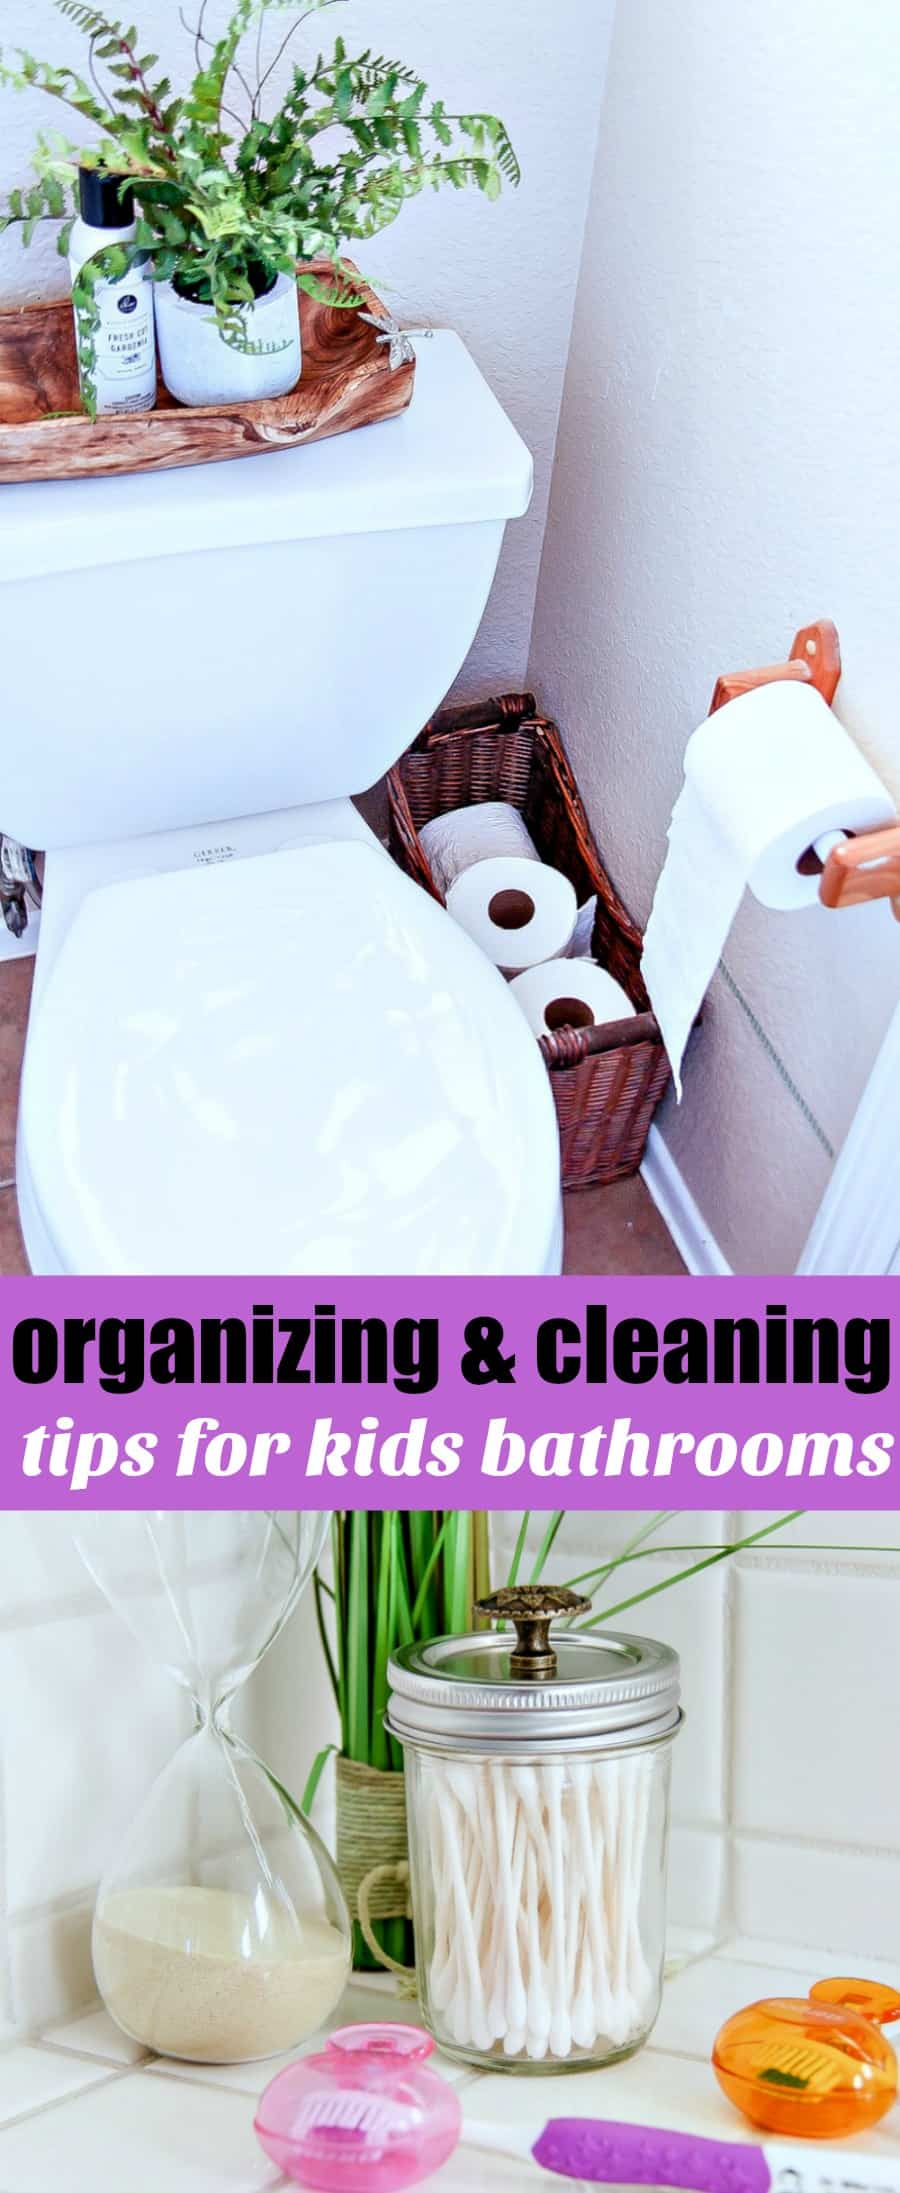 Tips for organizing and cleaning elemetnary aged kids bathrooms